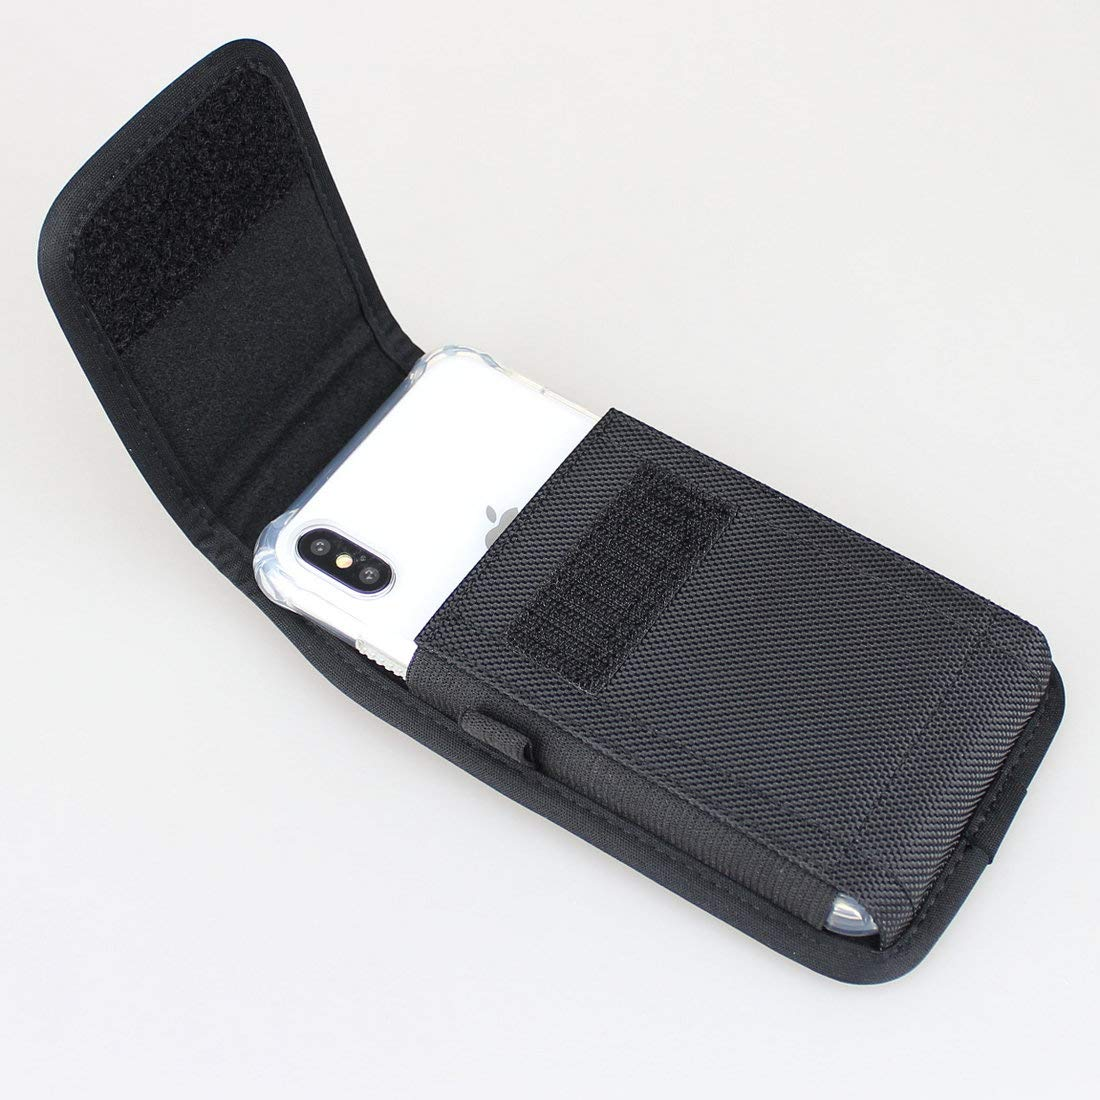 iPhone 6//6s//7//8 Plus 5.5 Black Aubaddy Vertical Nylon Holster Pouch Case with Belt Loop for iPhone Xs Max Fit with a Thin Case